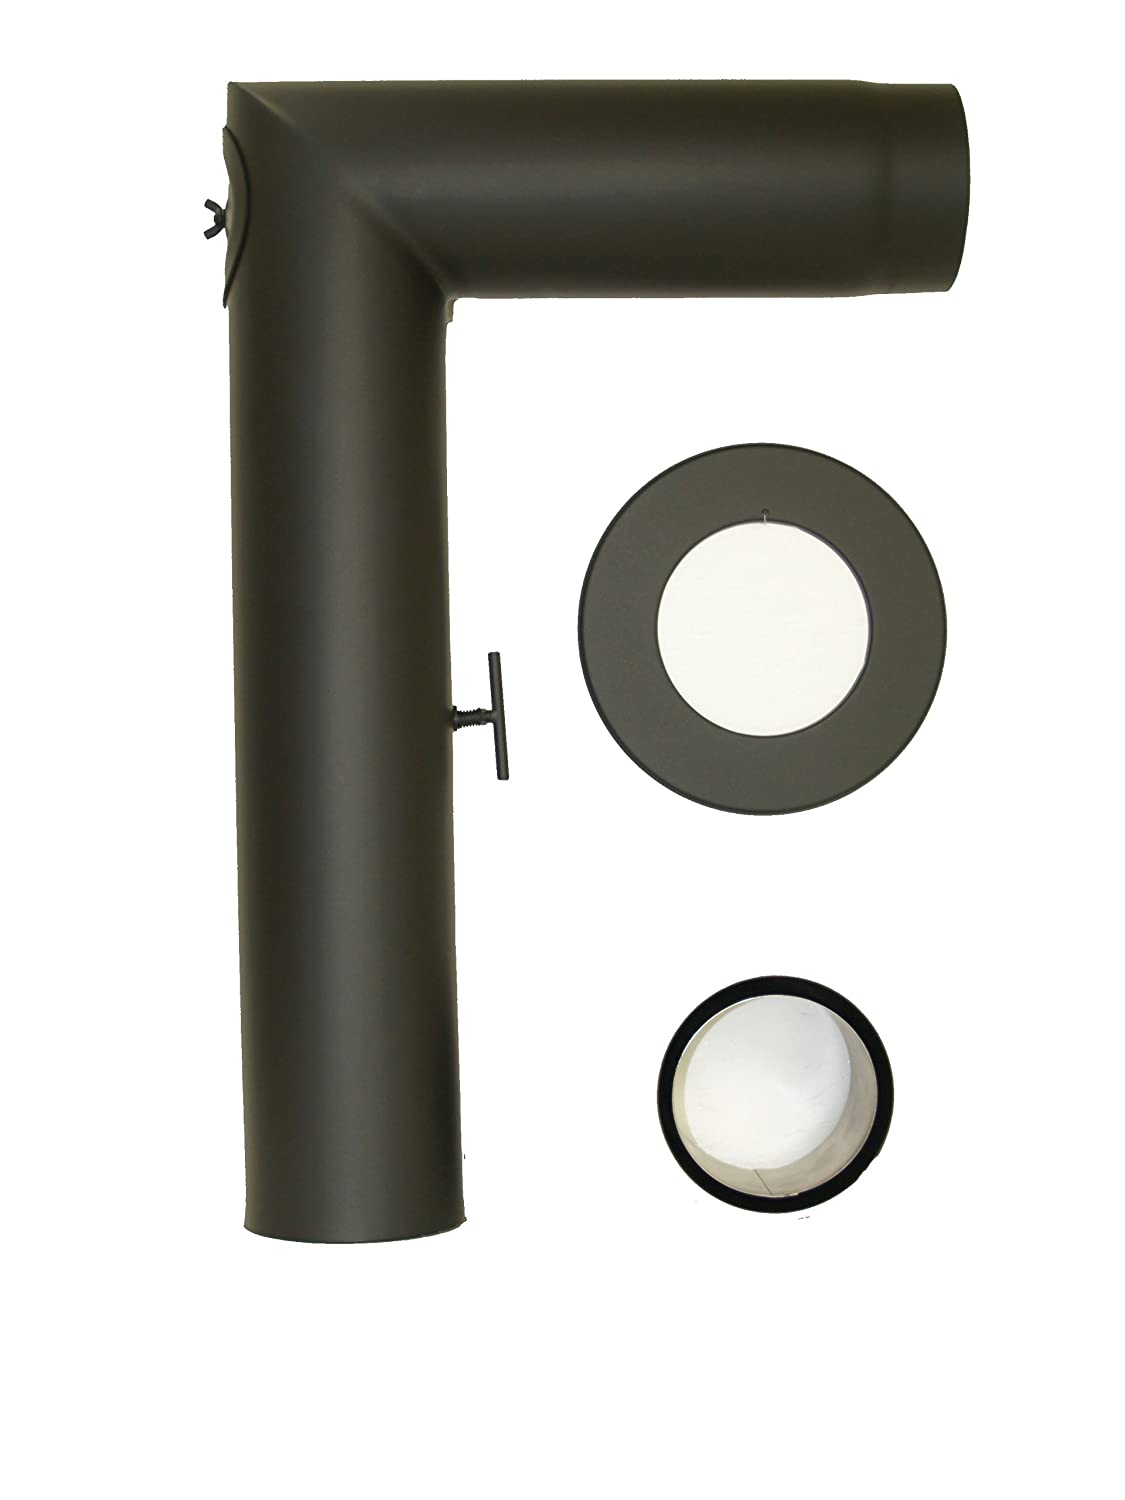 Lanzzas Stove Pipe Chimney Pipe Pipe Set 3Pieces with Damper Flap 90° Steel 2mm Diameter 130mm Black